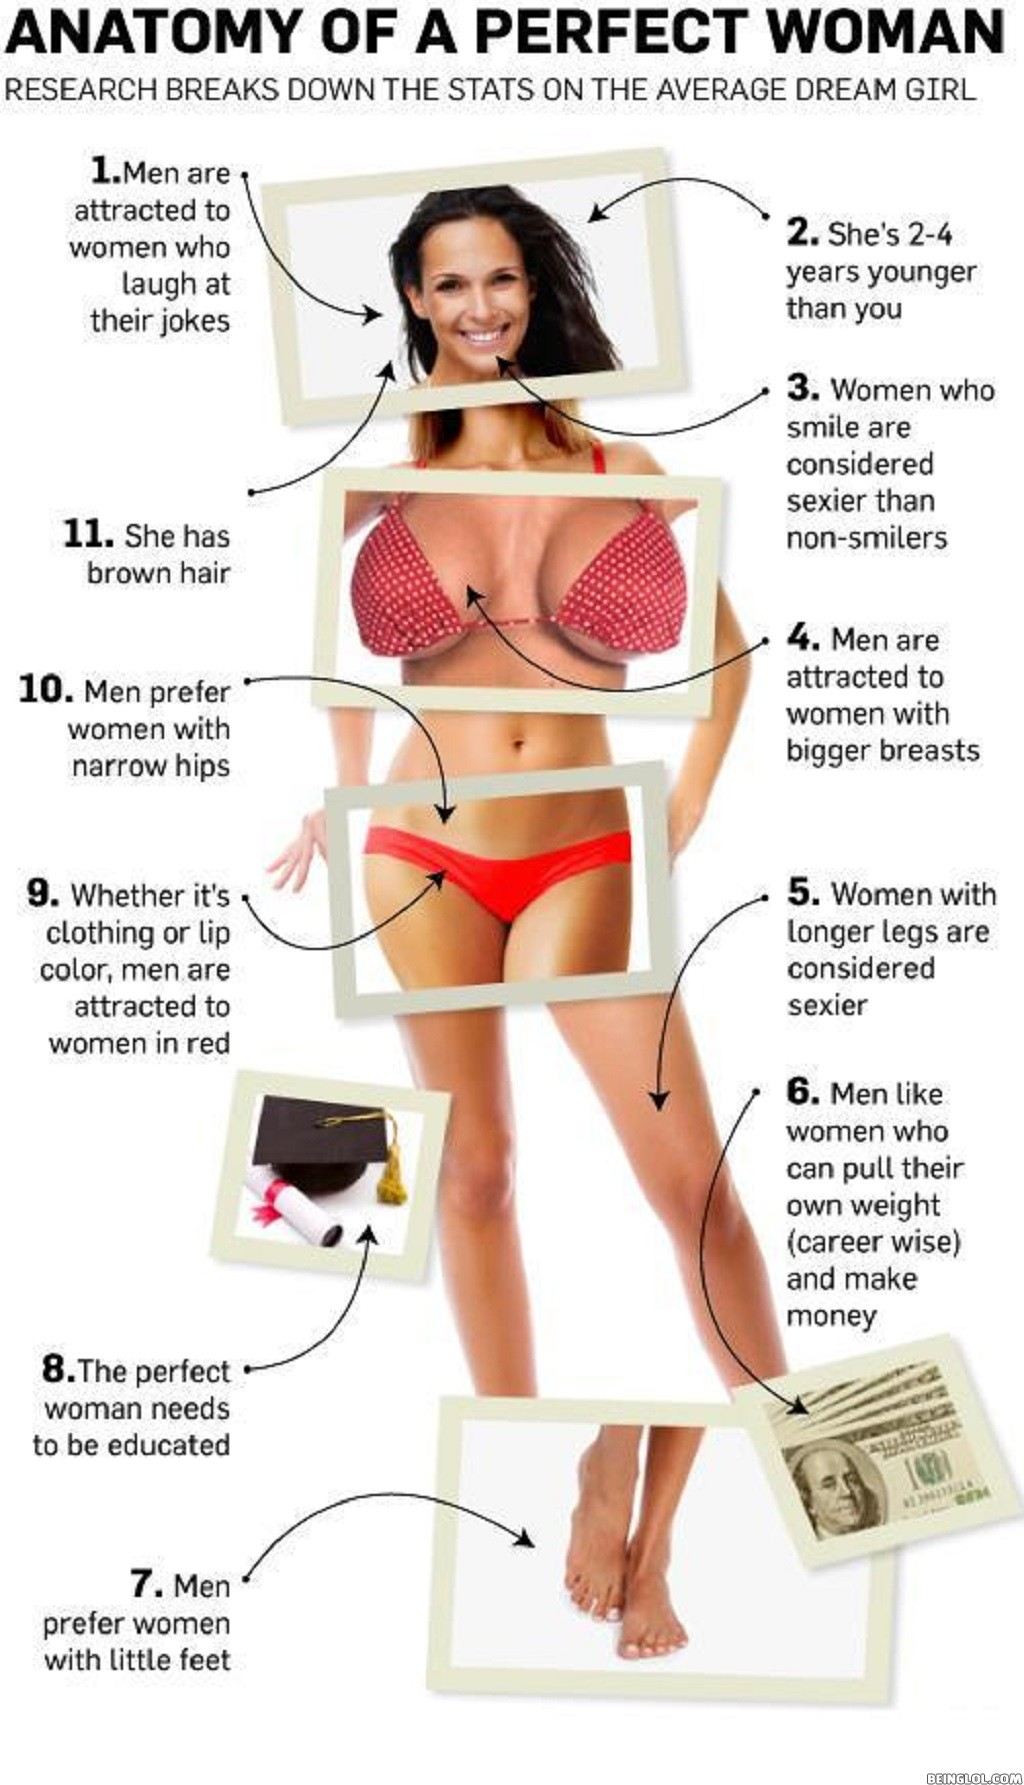 The Anatomy of the Perfect Woman